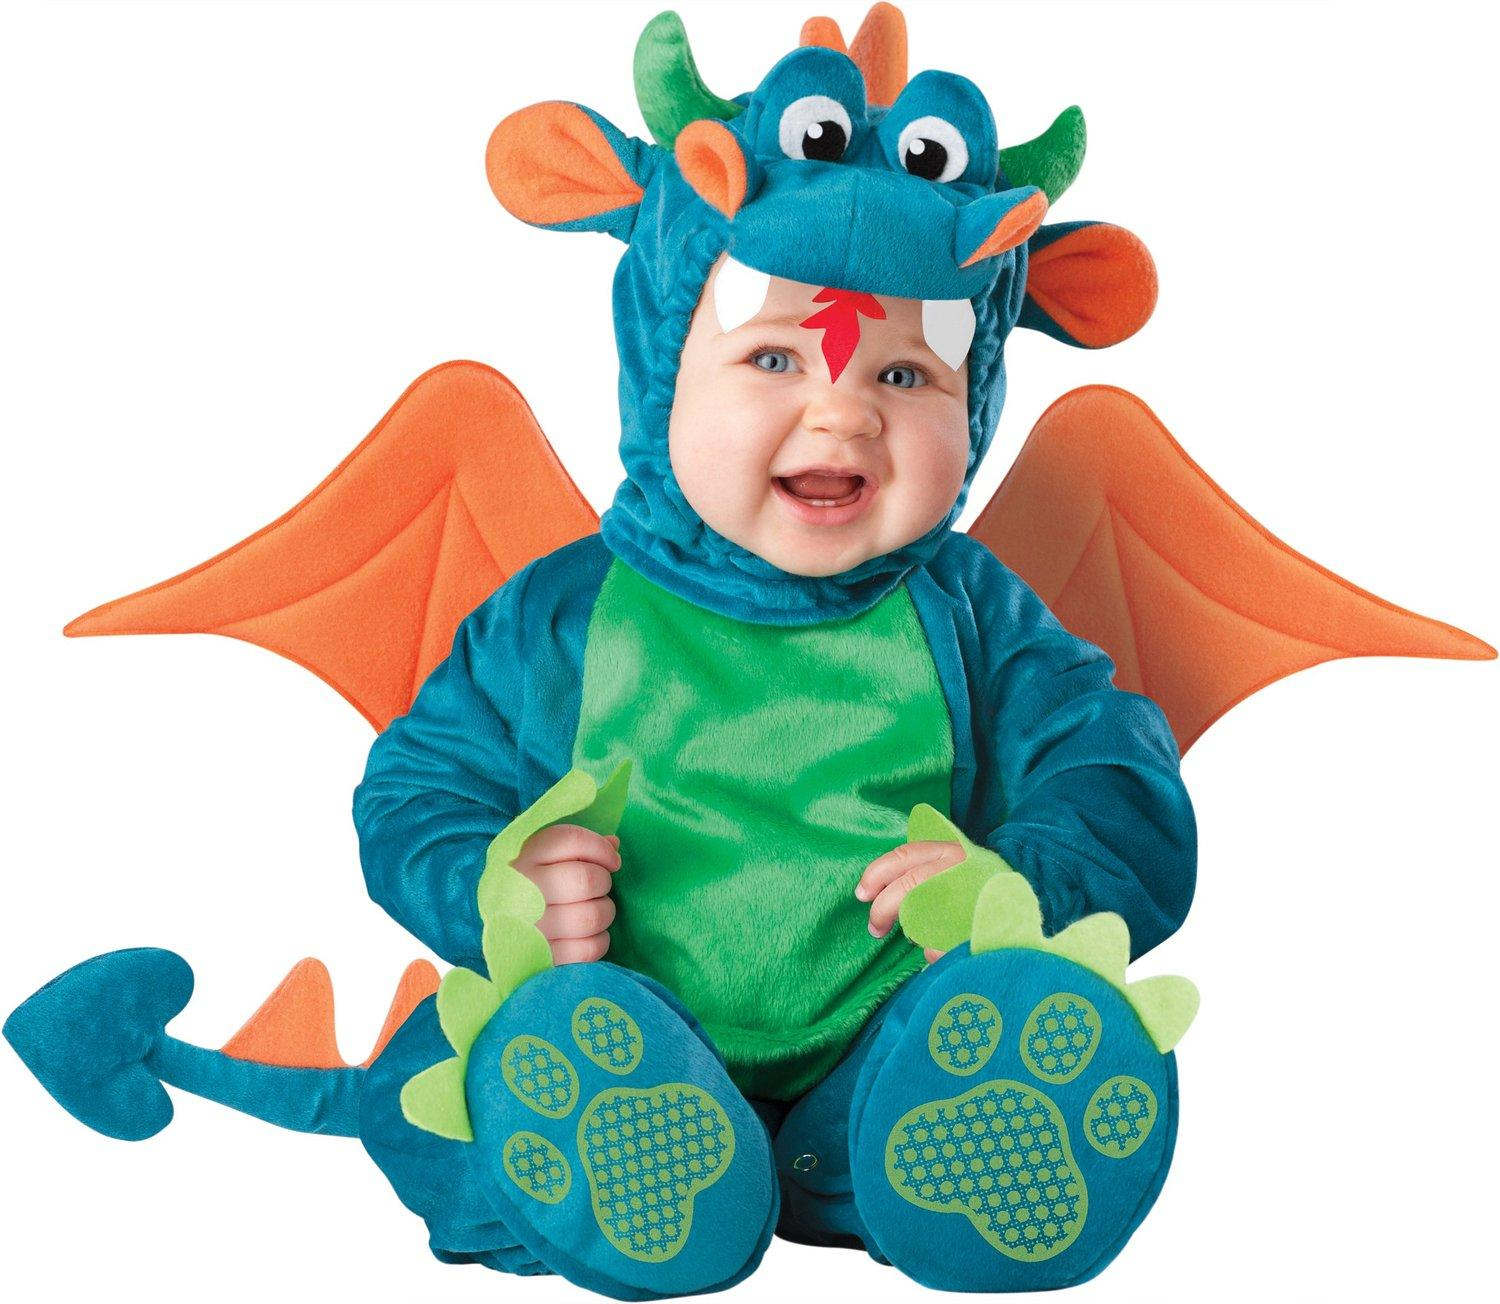 Boys Infant and Toddler Costumes Traditional Halloween favorites such as superheroes and little monstrous cuties are part of our huge selection. Also look for Disney character and cartoon star favorites for your little guy's best dress up choices.